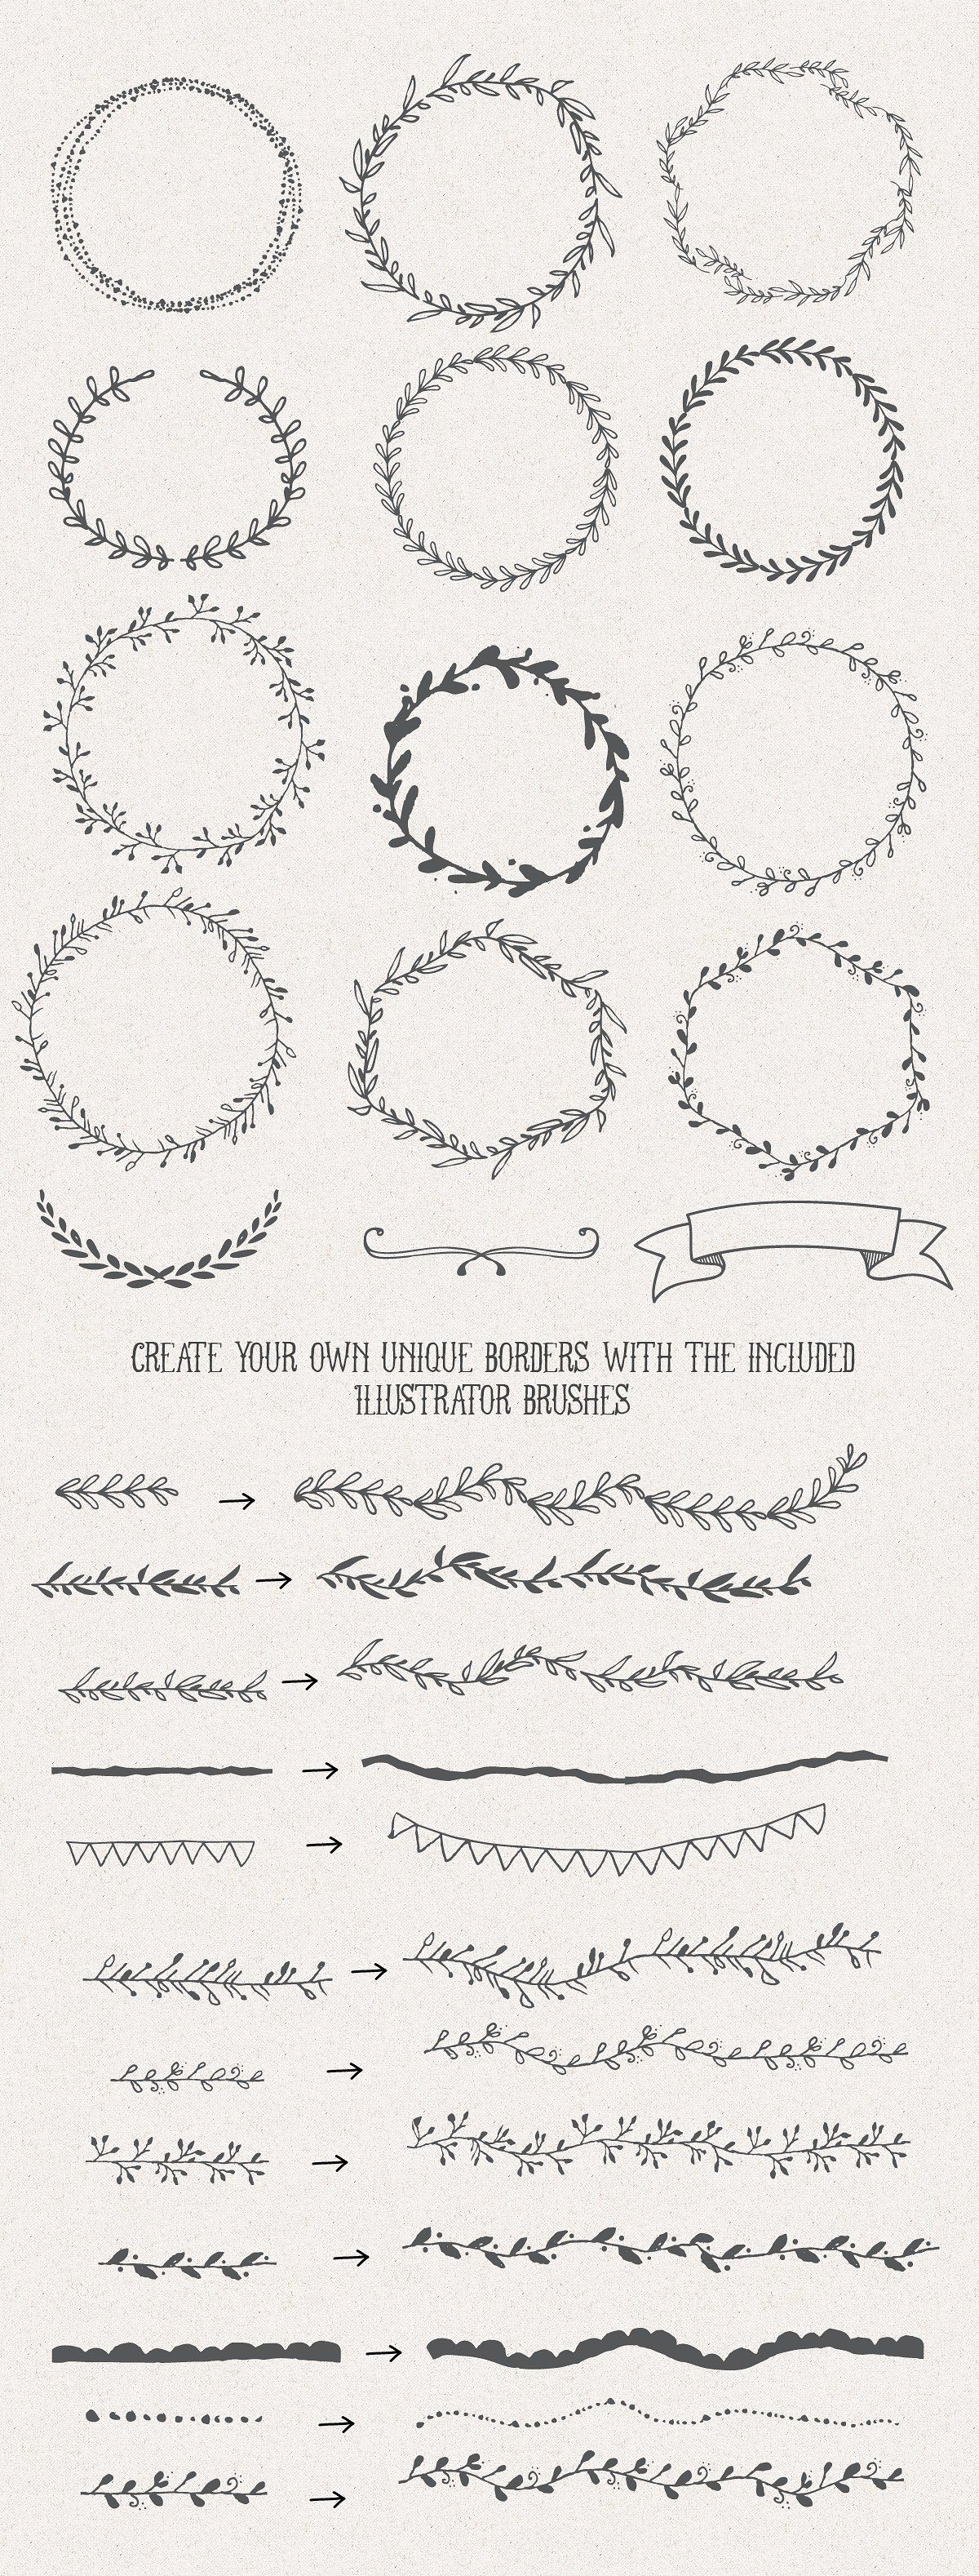 The Handsketched Designers Kit by Nickylaatz on @creativemarket